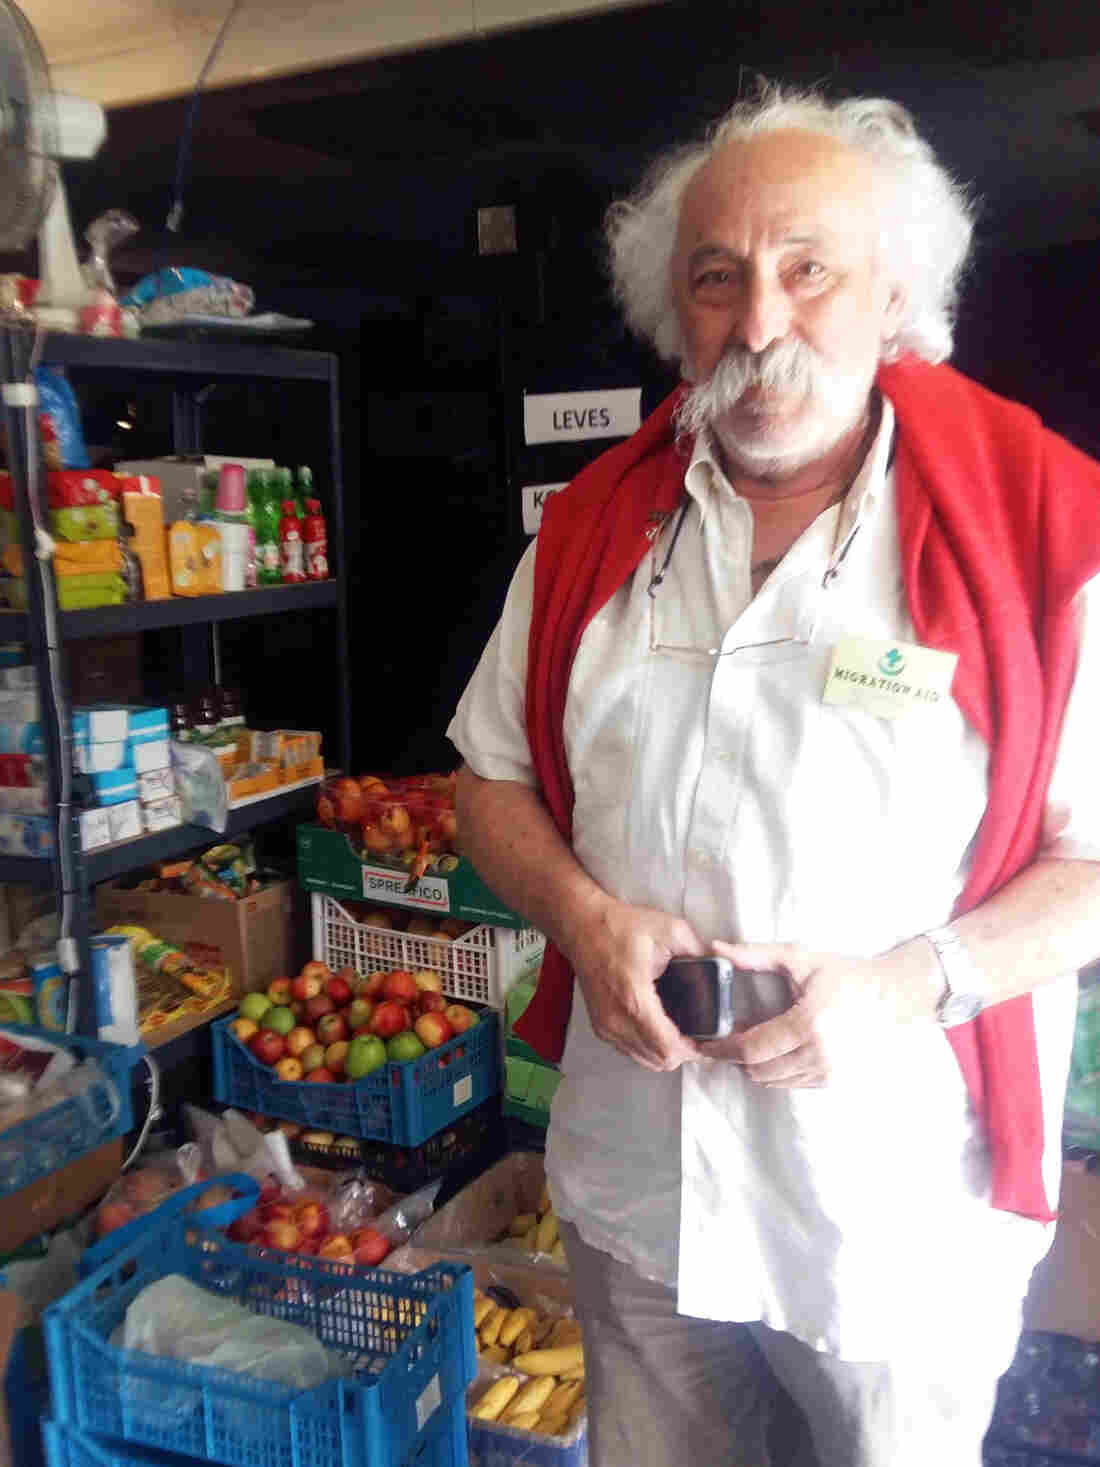 Robert Bekesi, a Hungarian Jew and Holocaust survivor, stands near some of the supplies he's transporting to an overcrowded migrant reception center near Hungary's border with Serbia. One of thousands of Hungarian volunteers, Bekesi has spent the past week making deliveries.